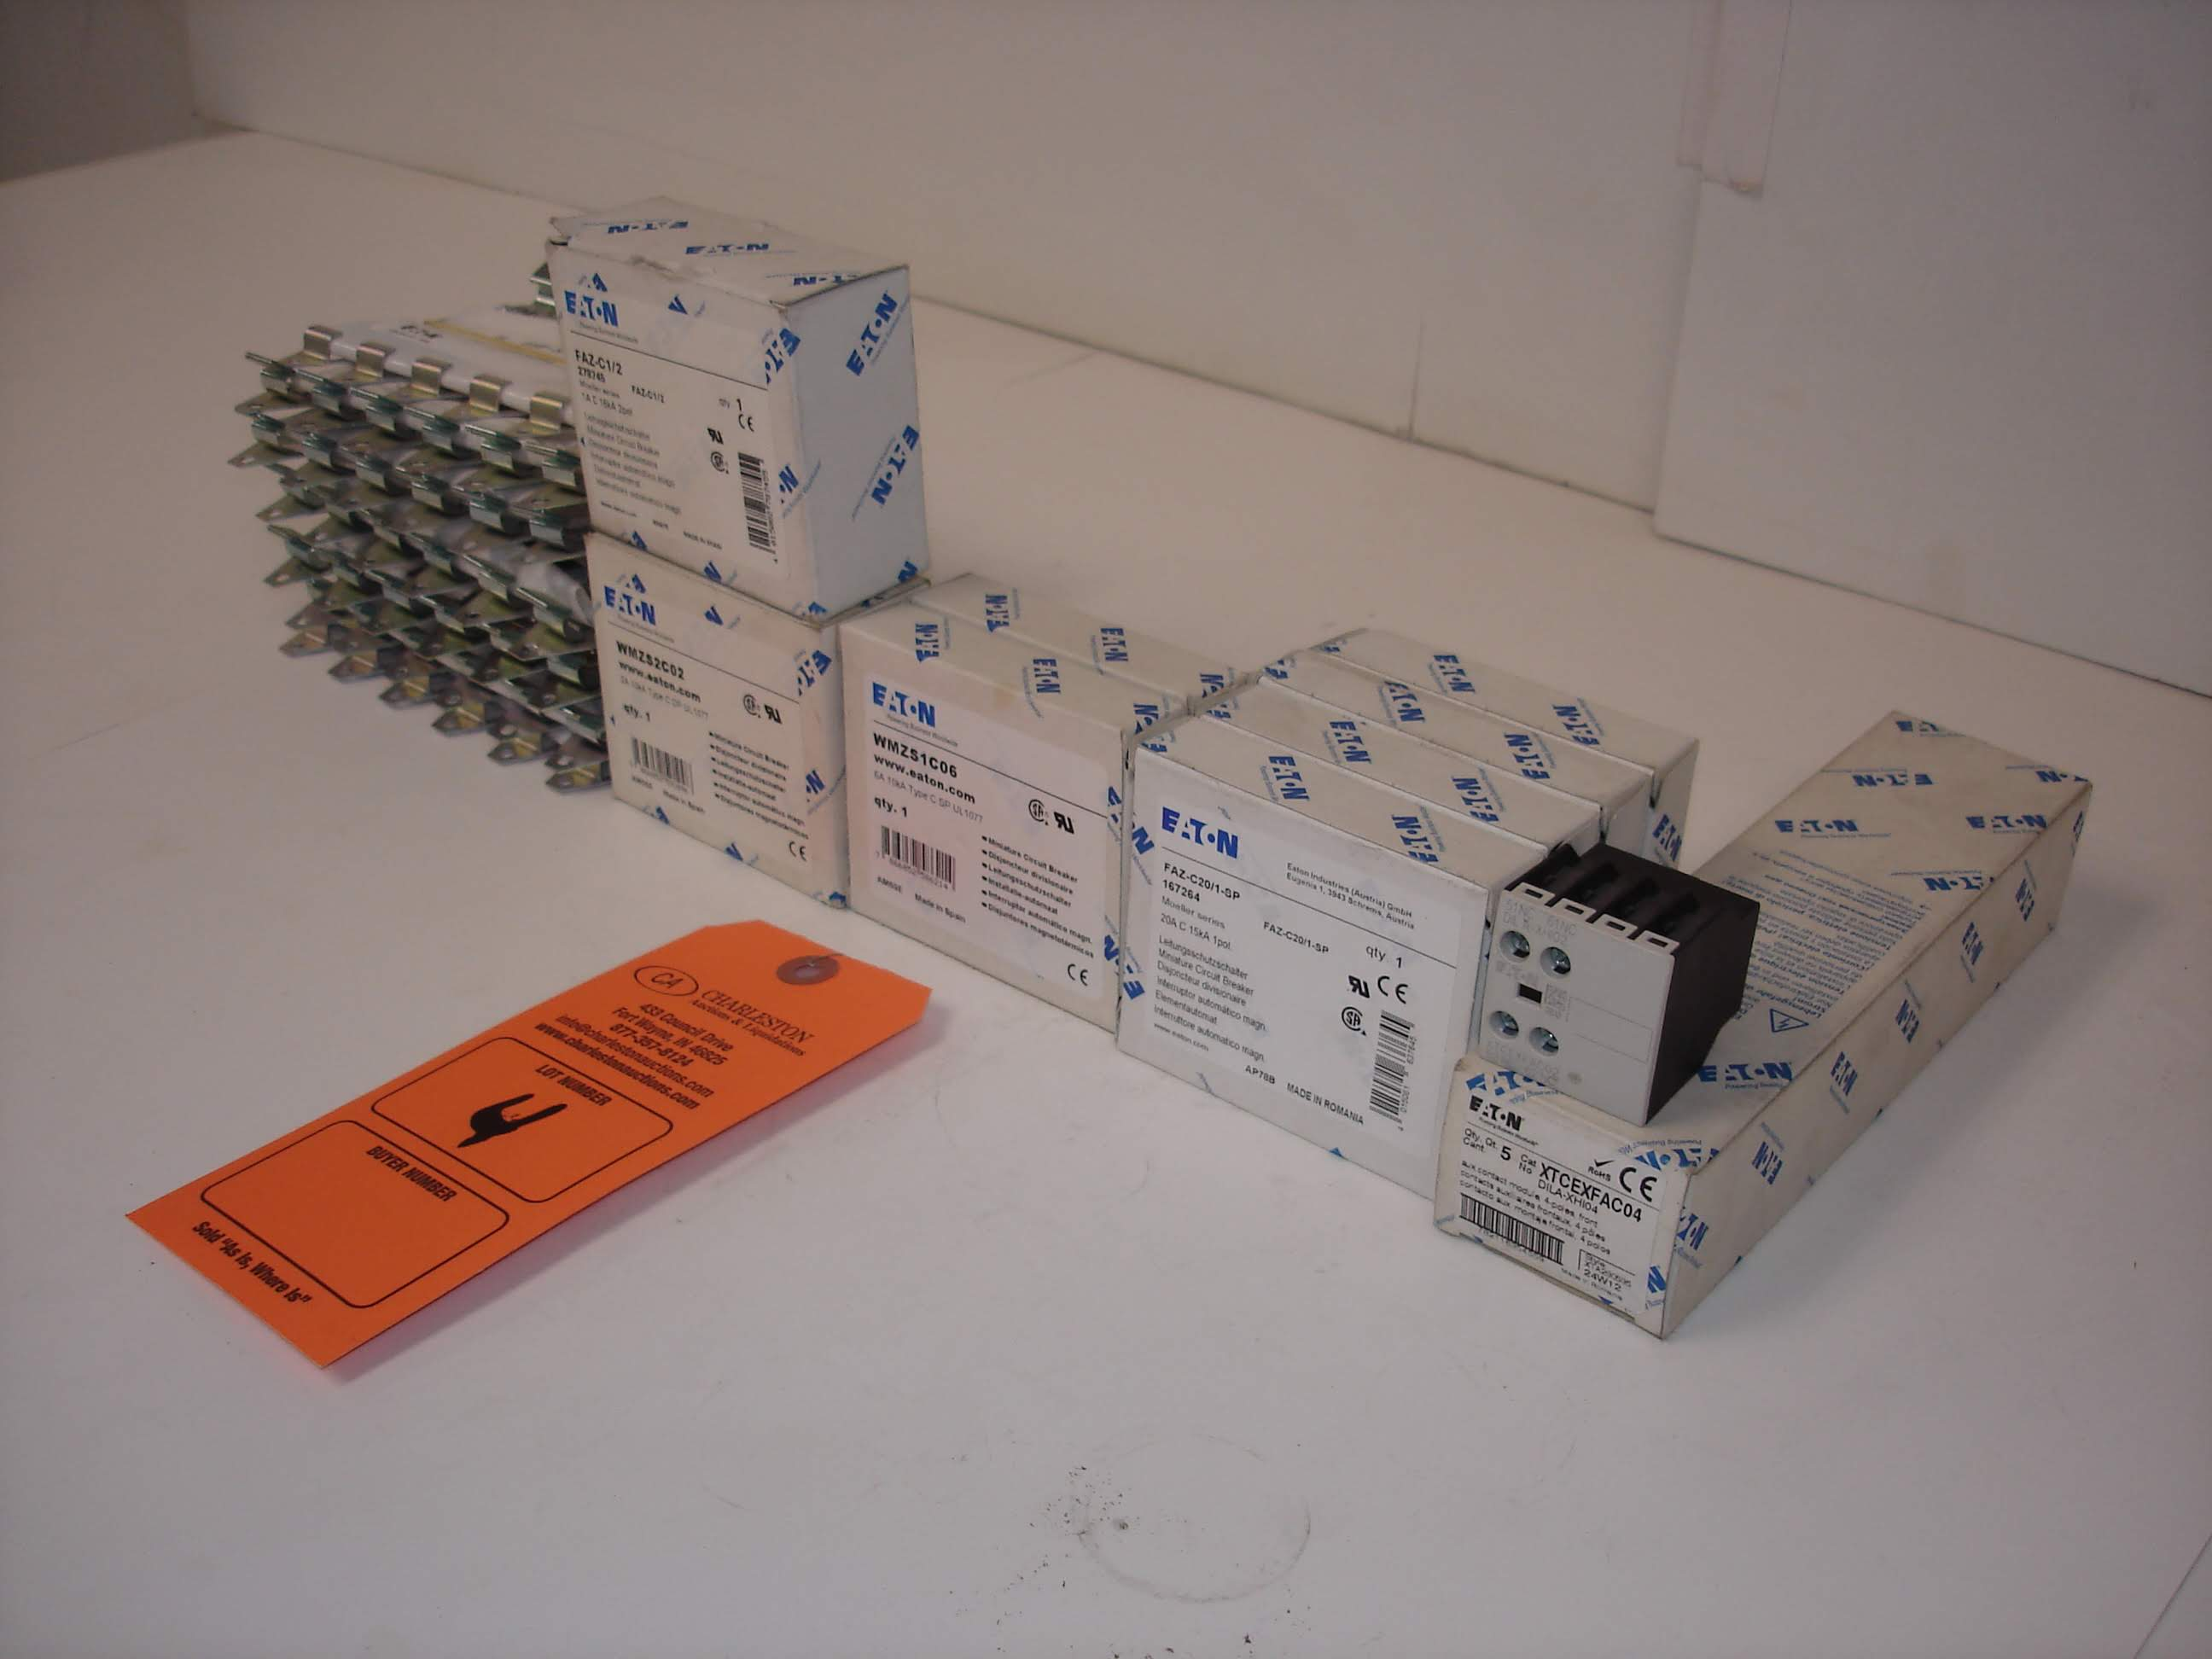 Lot 4 - (15+) MISC EATON BREAKERS: NEW EATON FAZ-C20/1-SP AND ALL OTHER ITEMS INCLUDED IN PHOTOS!